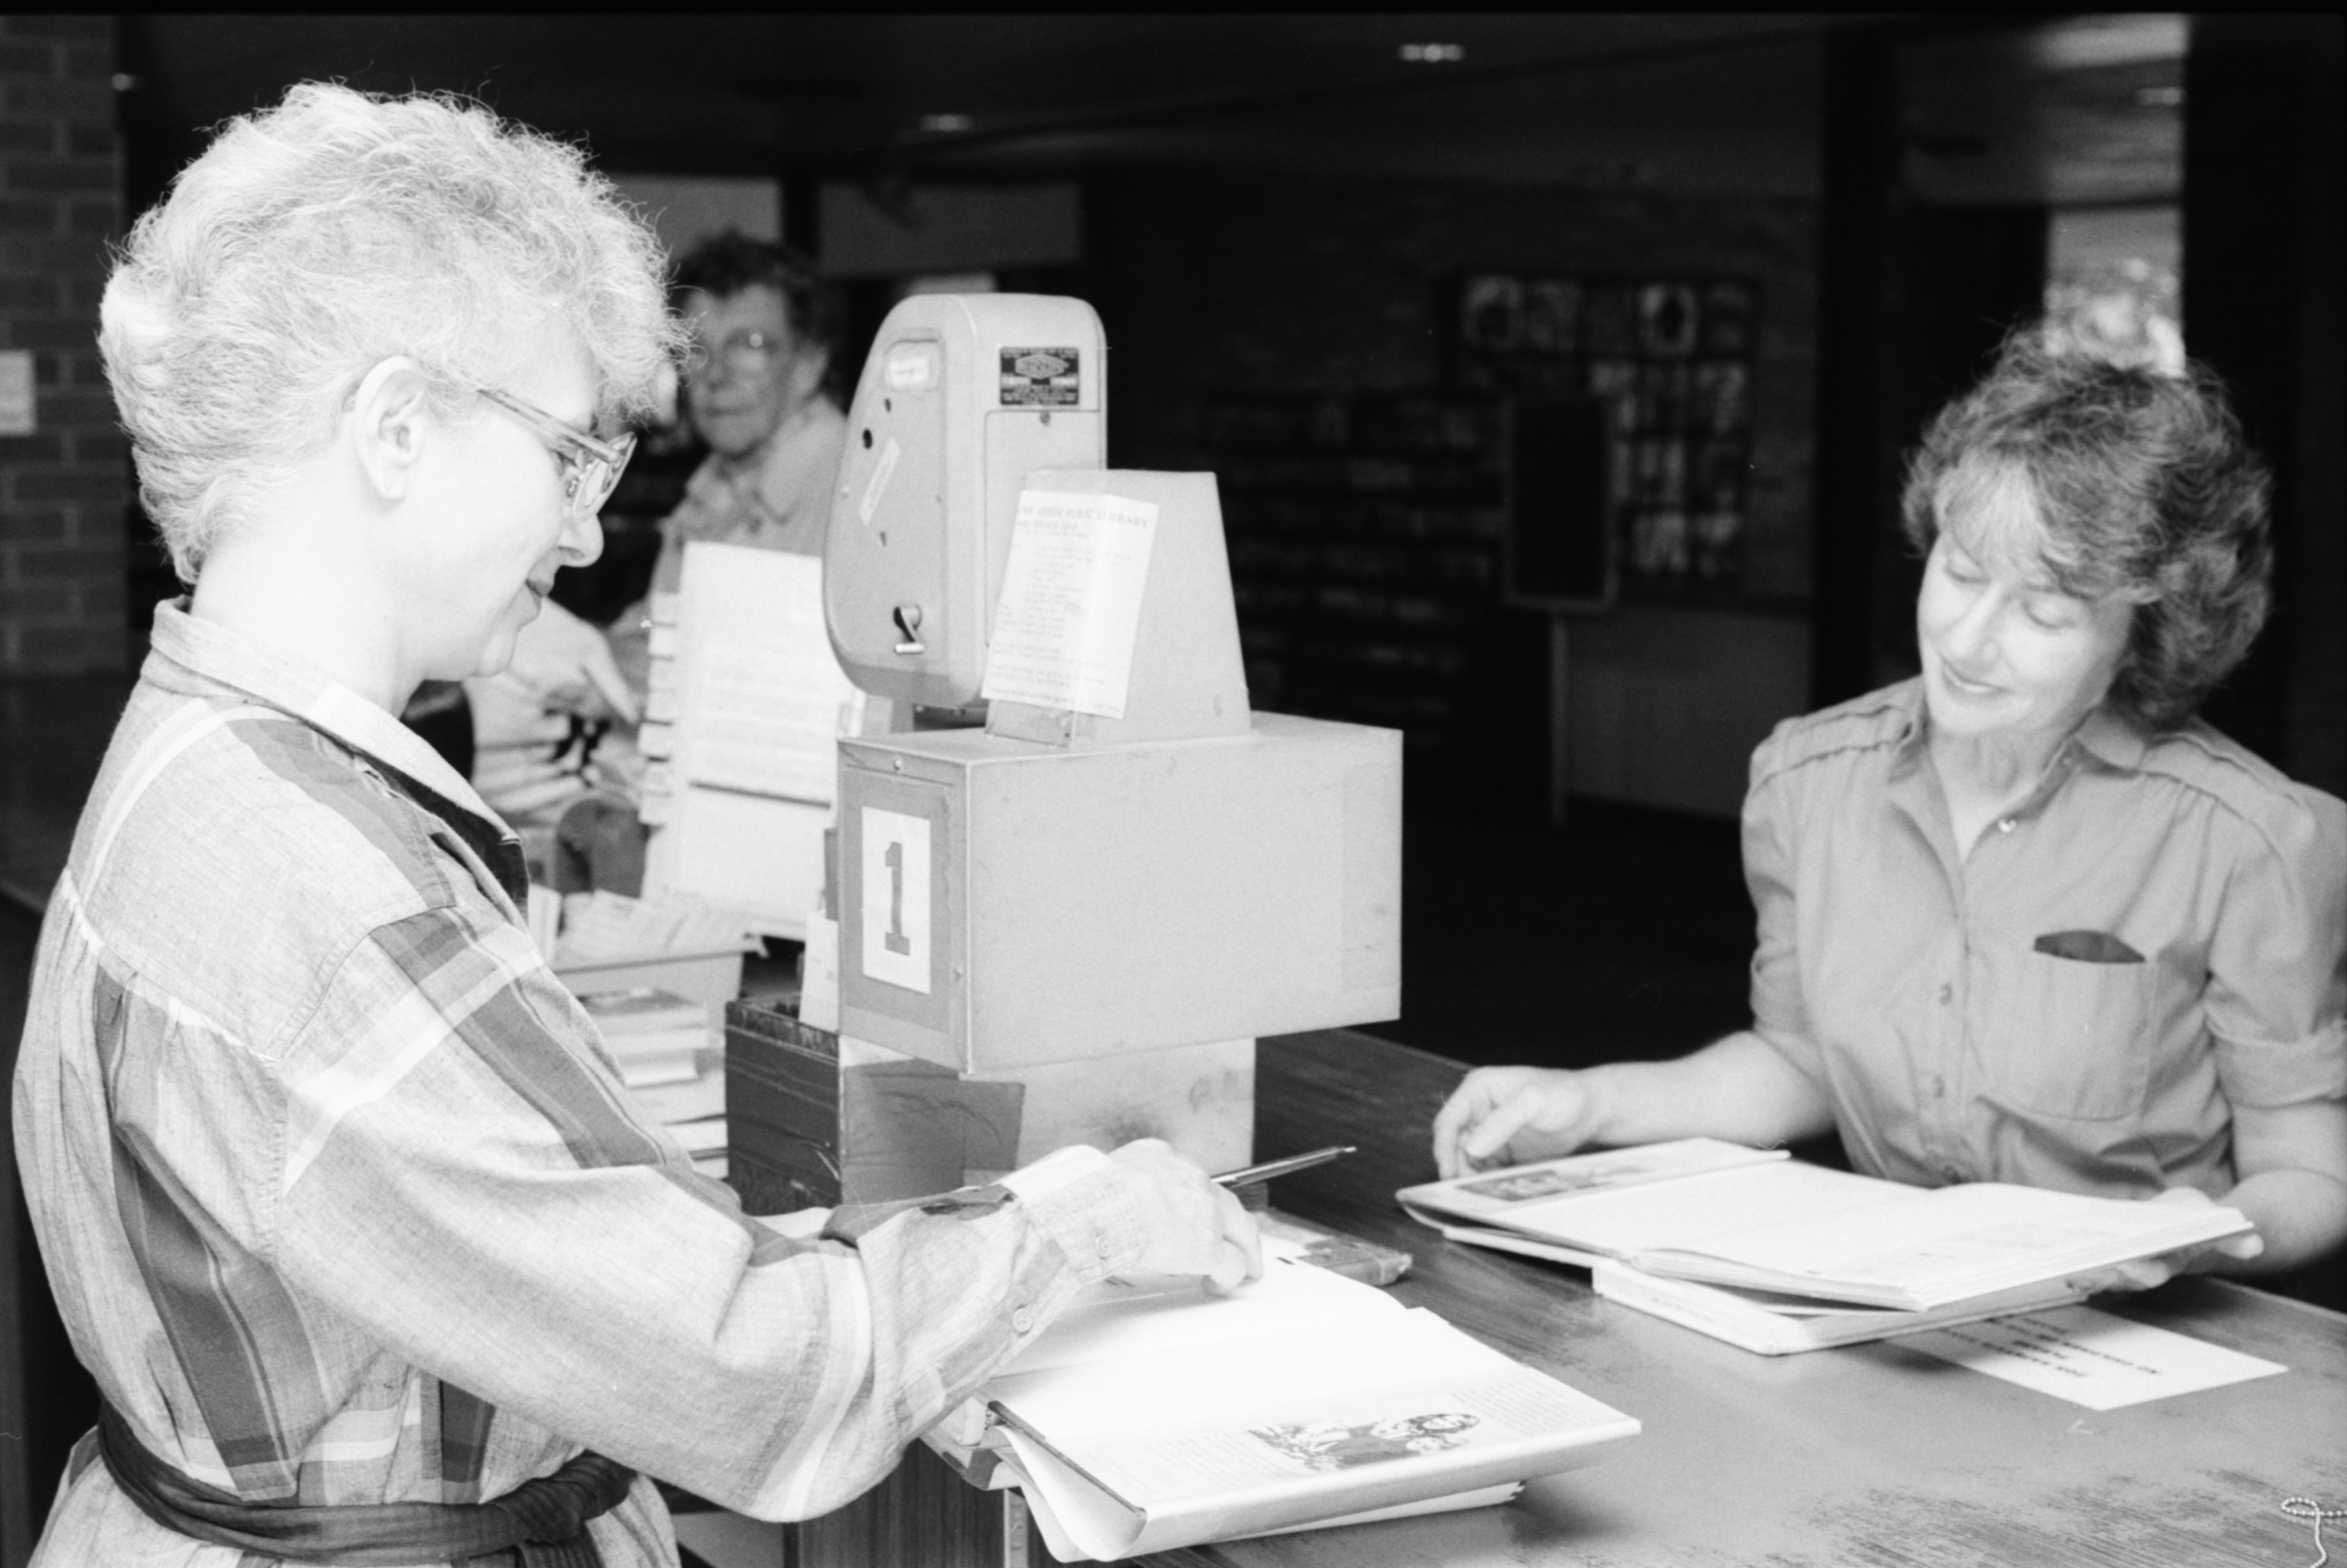 New Computerized Circulation System Coming To Ann Arbor Public Library, July 1984 image